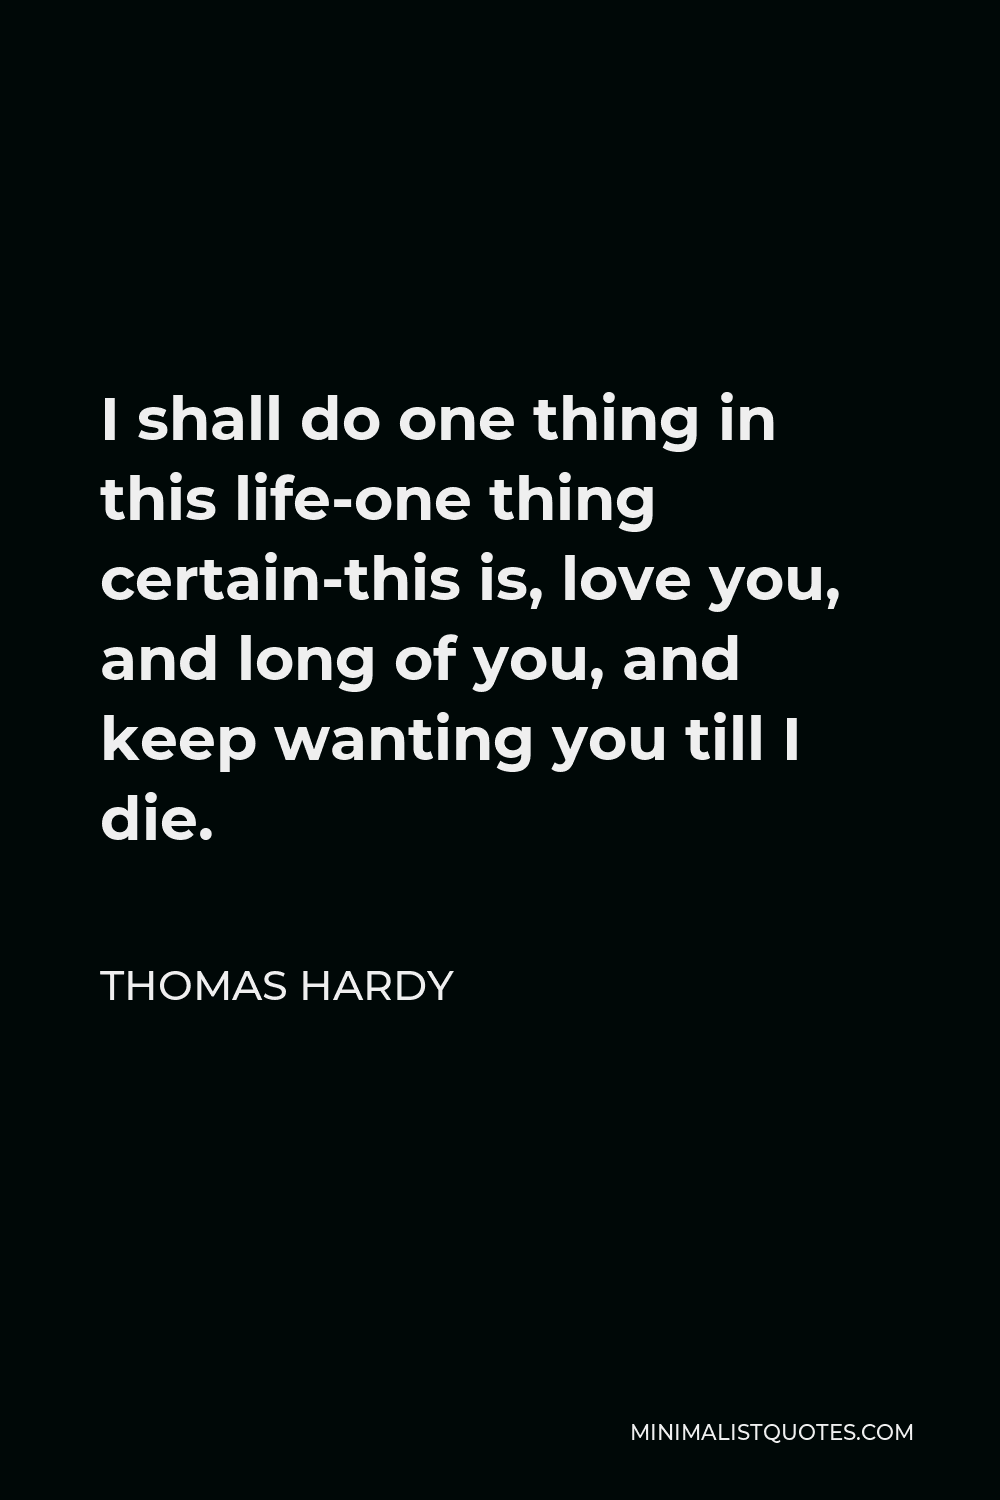 Thomas Hardy Quote - I shall do one thing in this life-one thing certain-this is, love you, and long of you, and keep wanting you till I die.